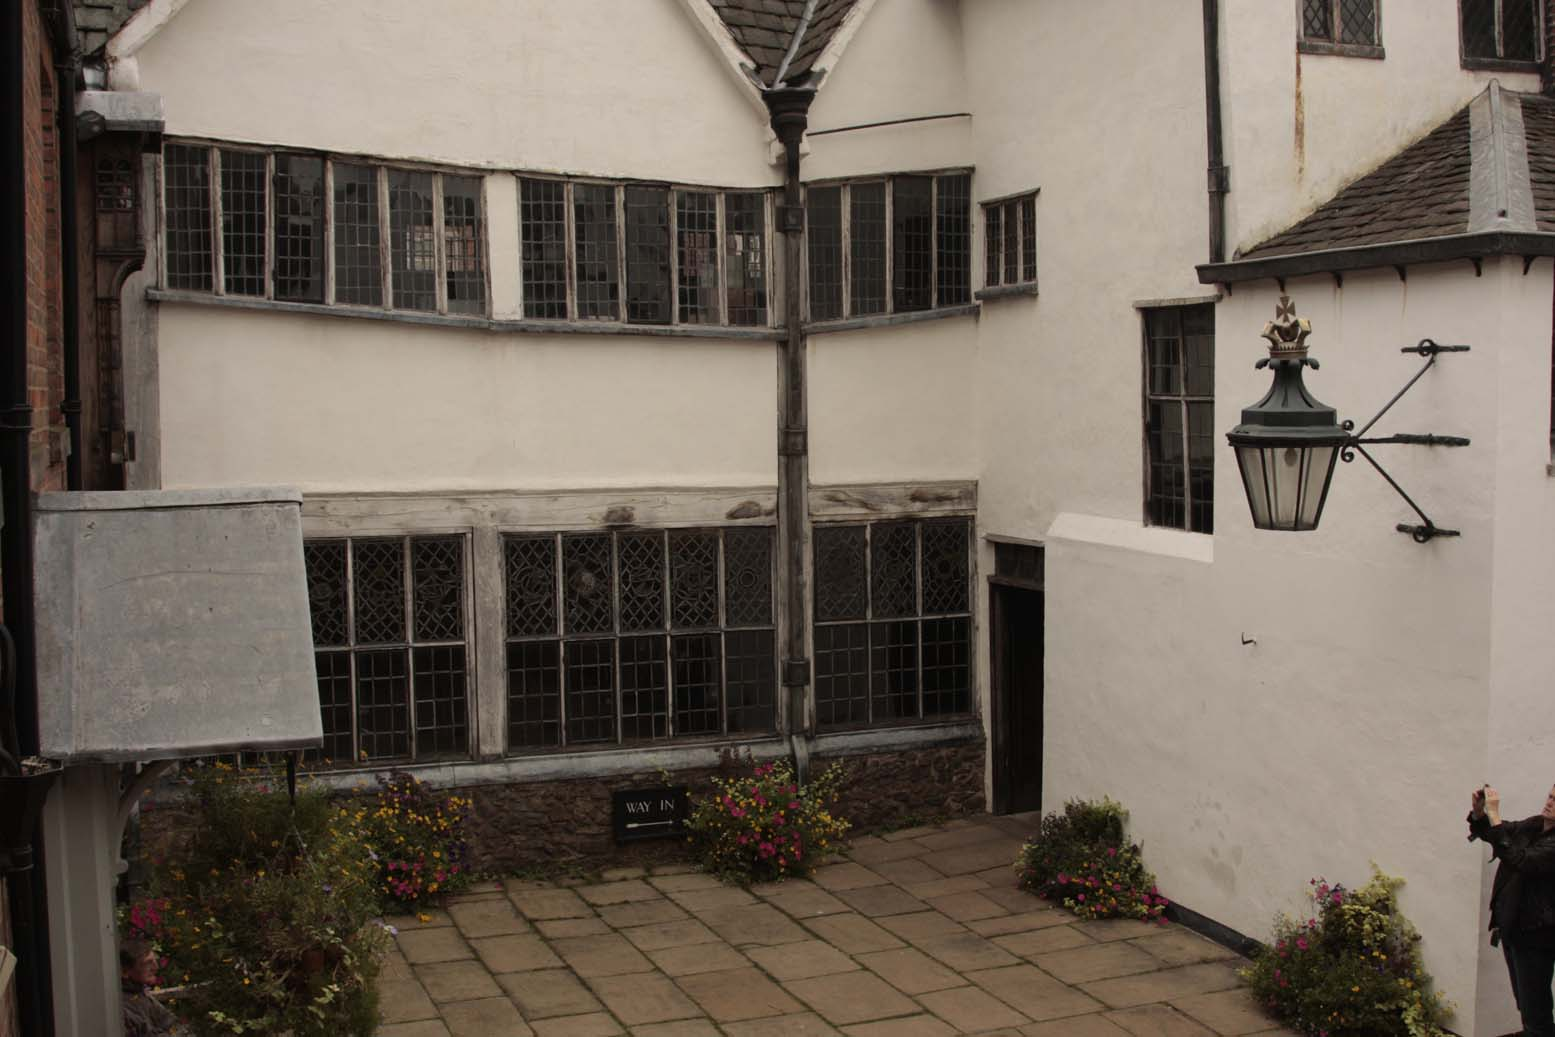 Leicester-Guildhall-1